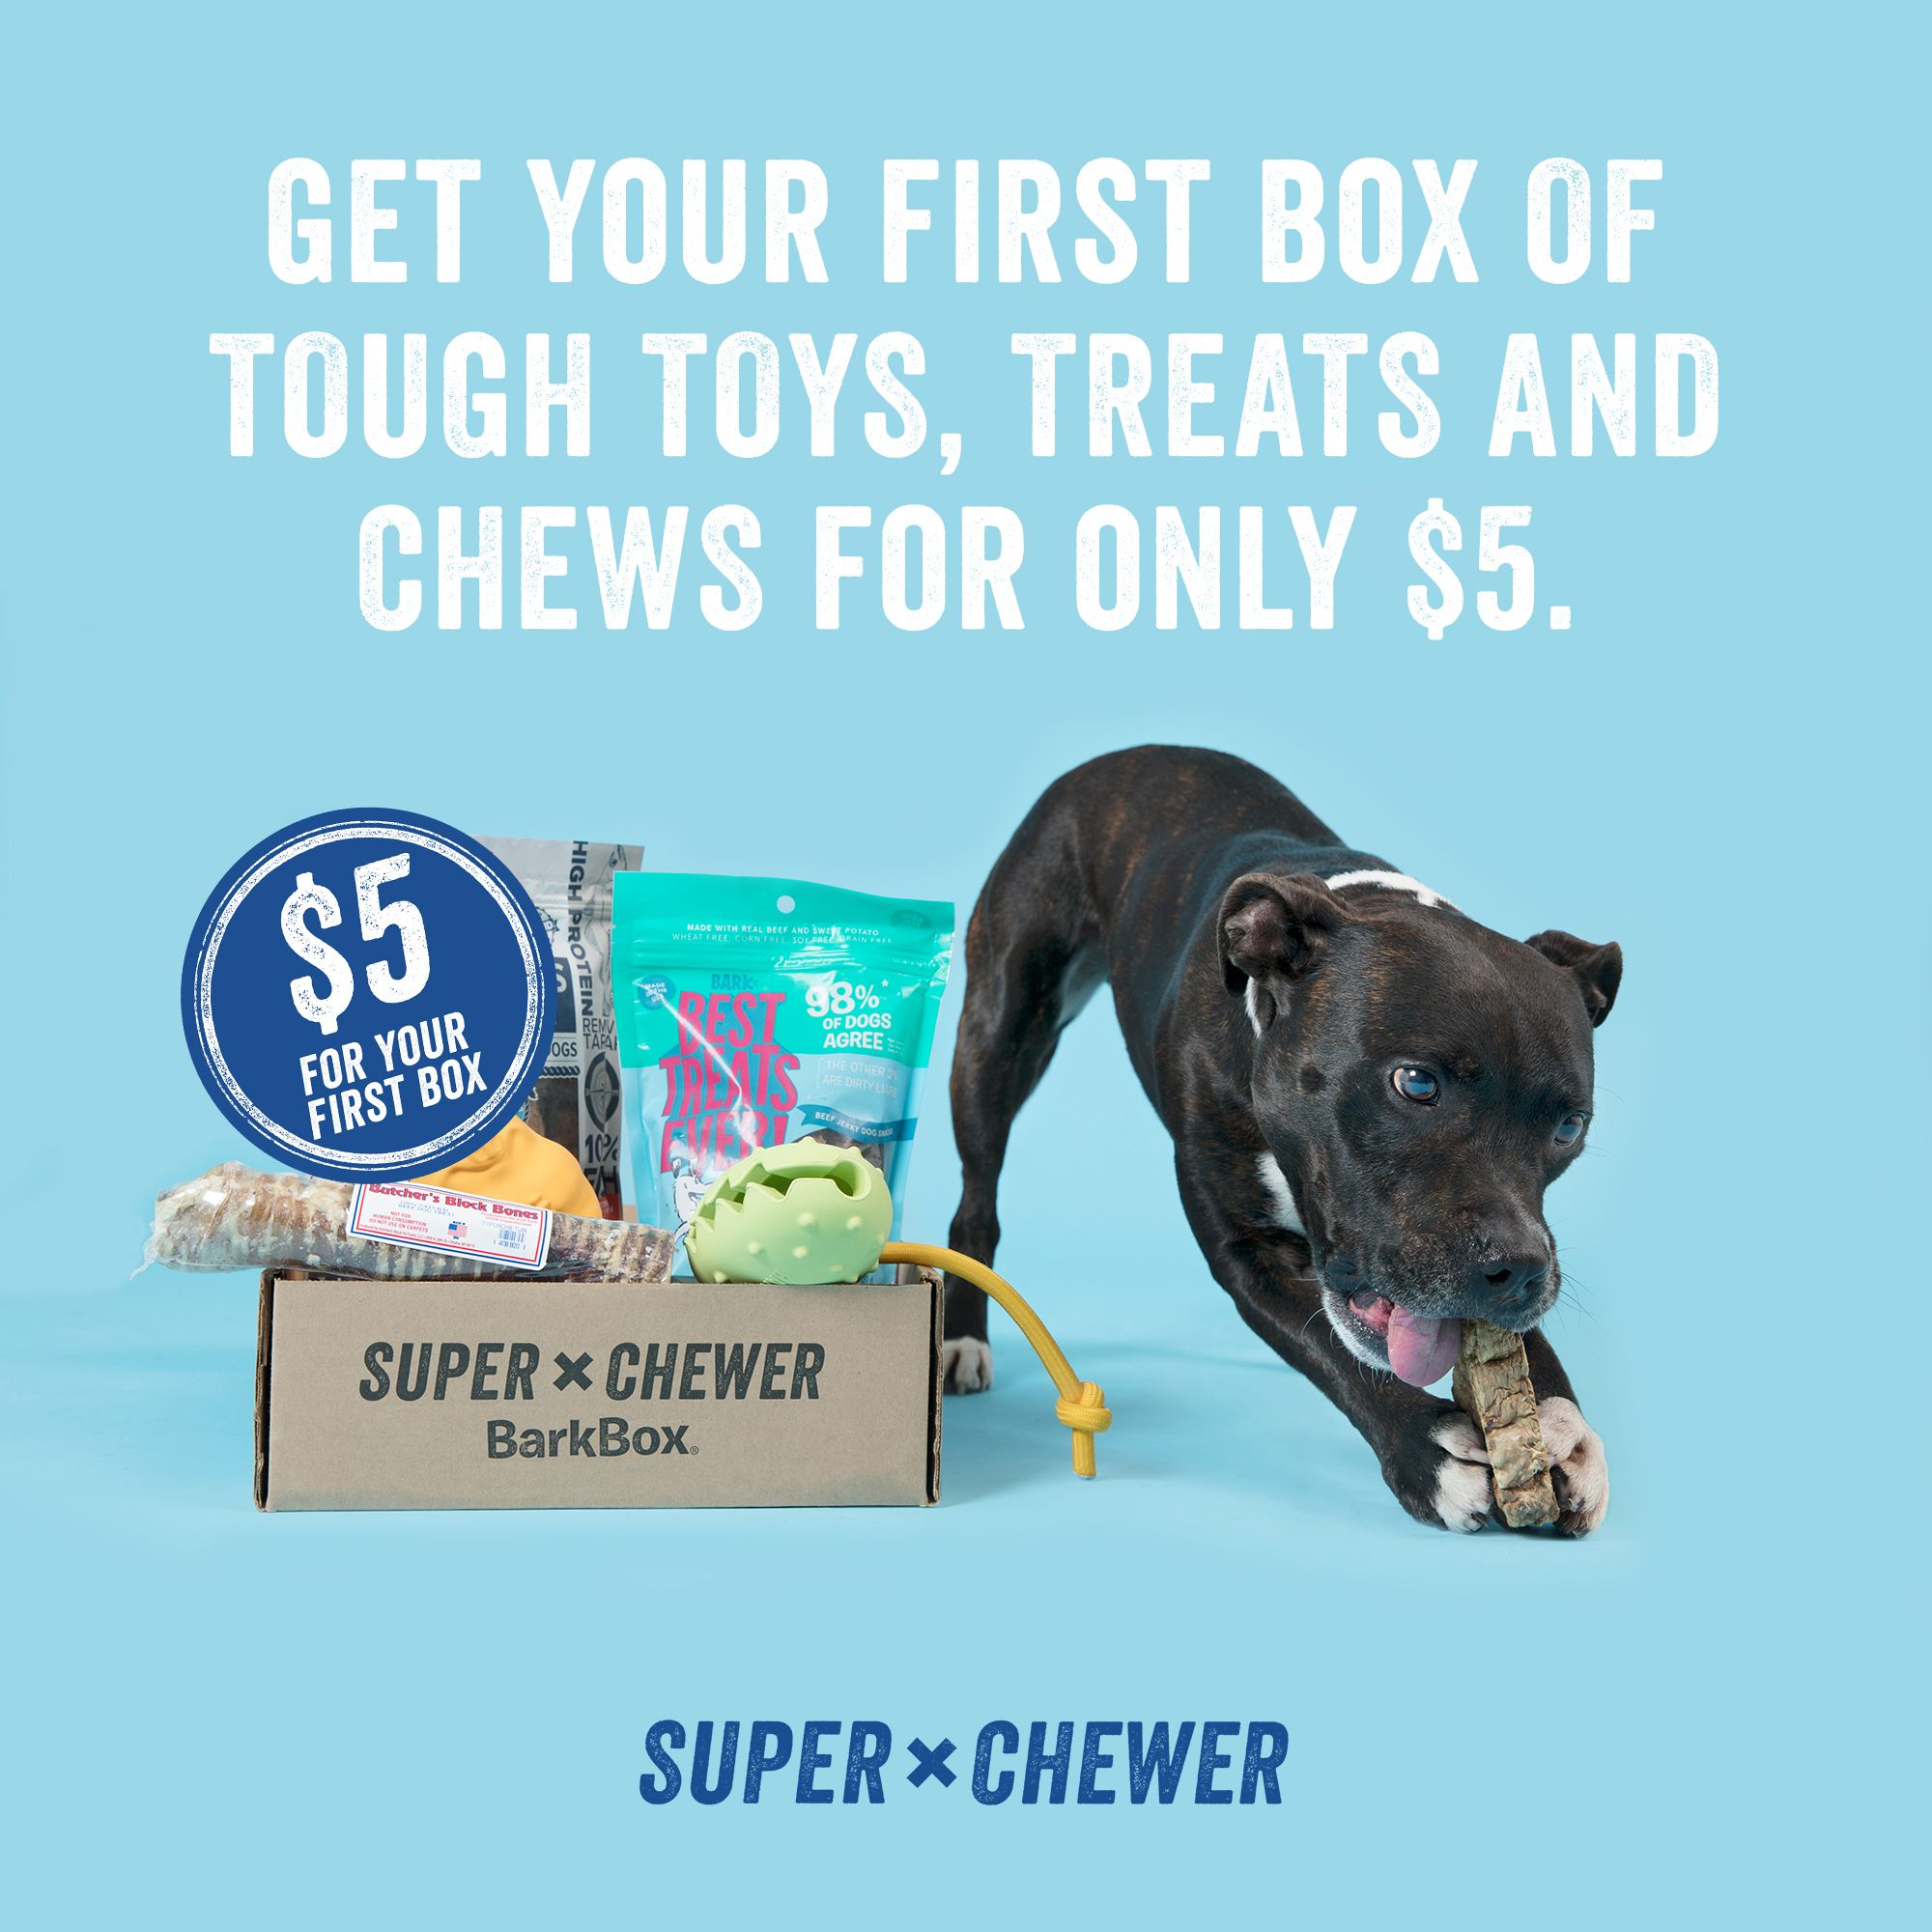 For just 5, you can get your dog a box full of tough toys